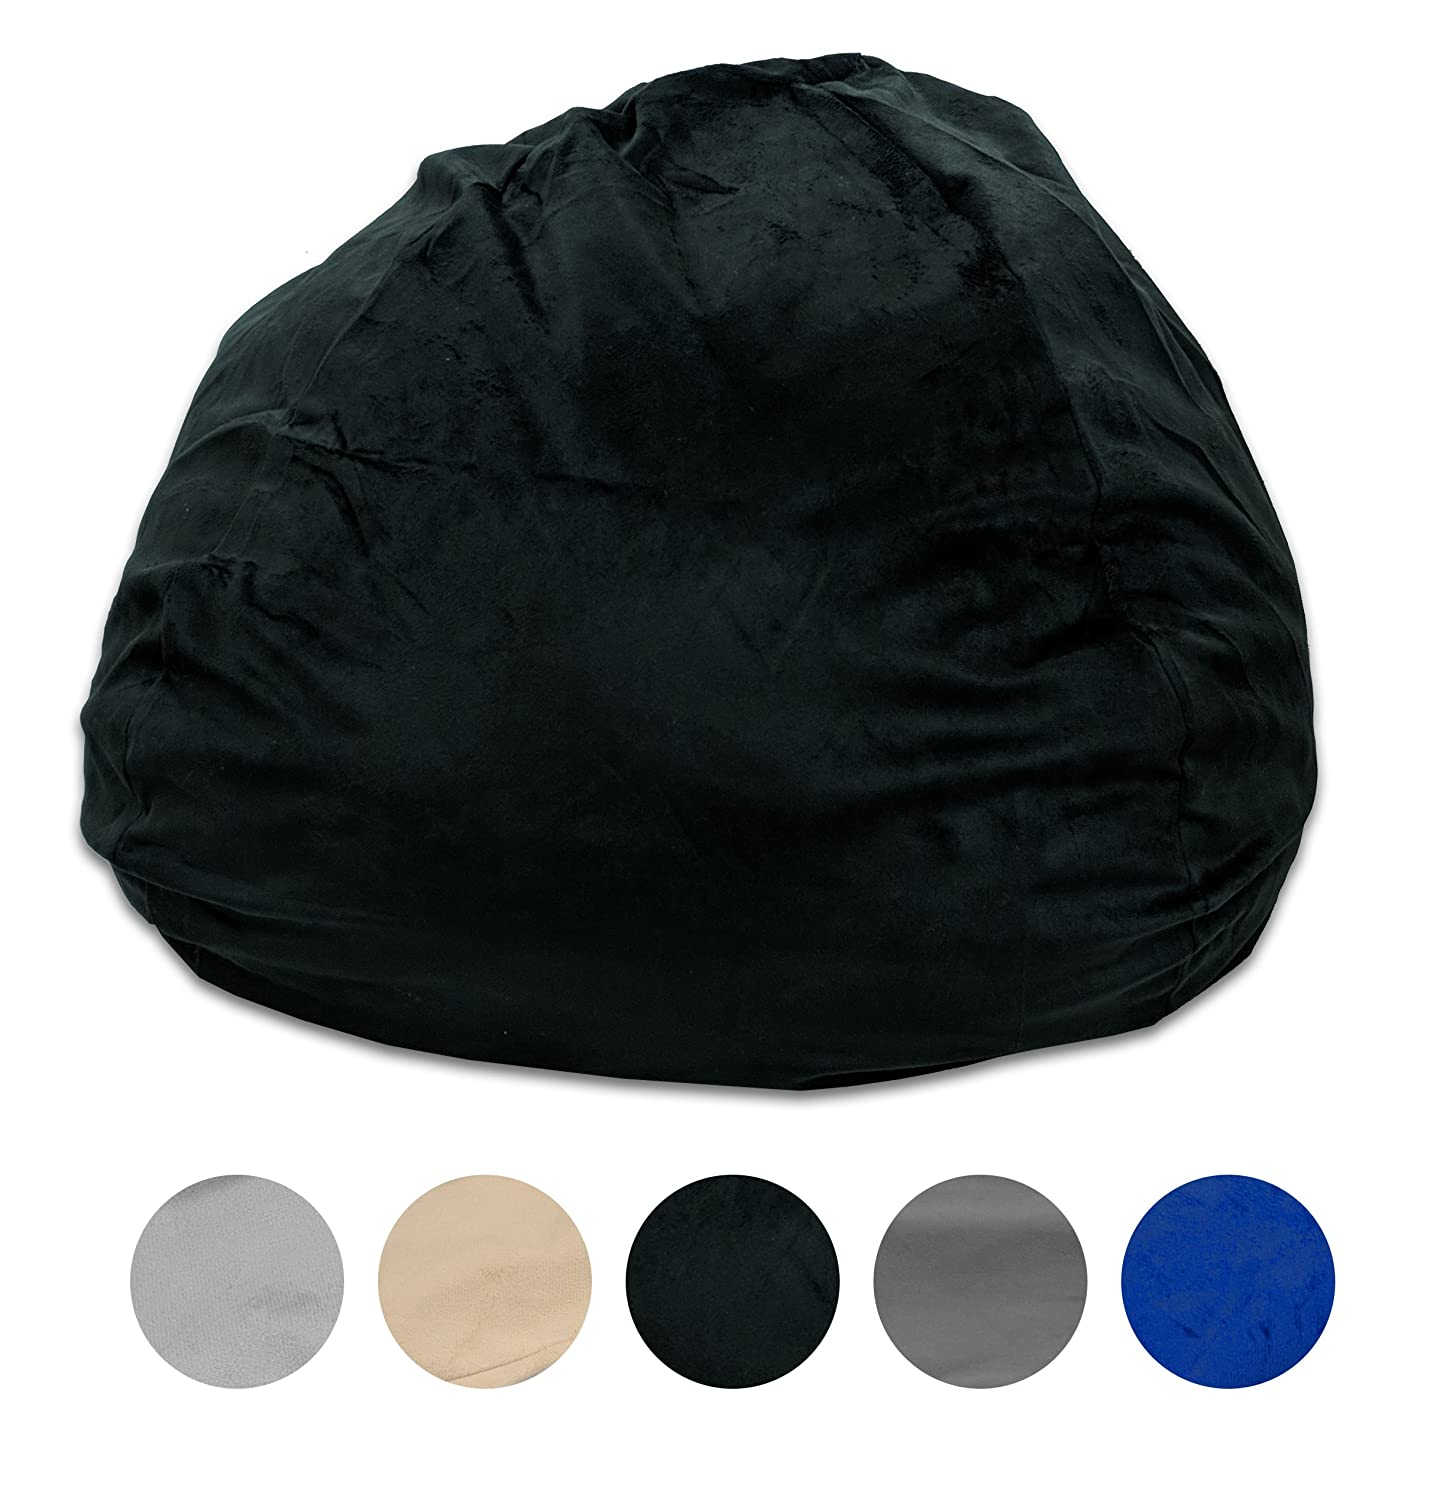 Pillowtex Quality Kids Memory Foam Bean Bag with Washable Removable Cover – 3ft (Ash)